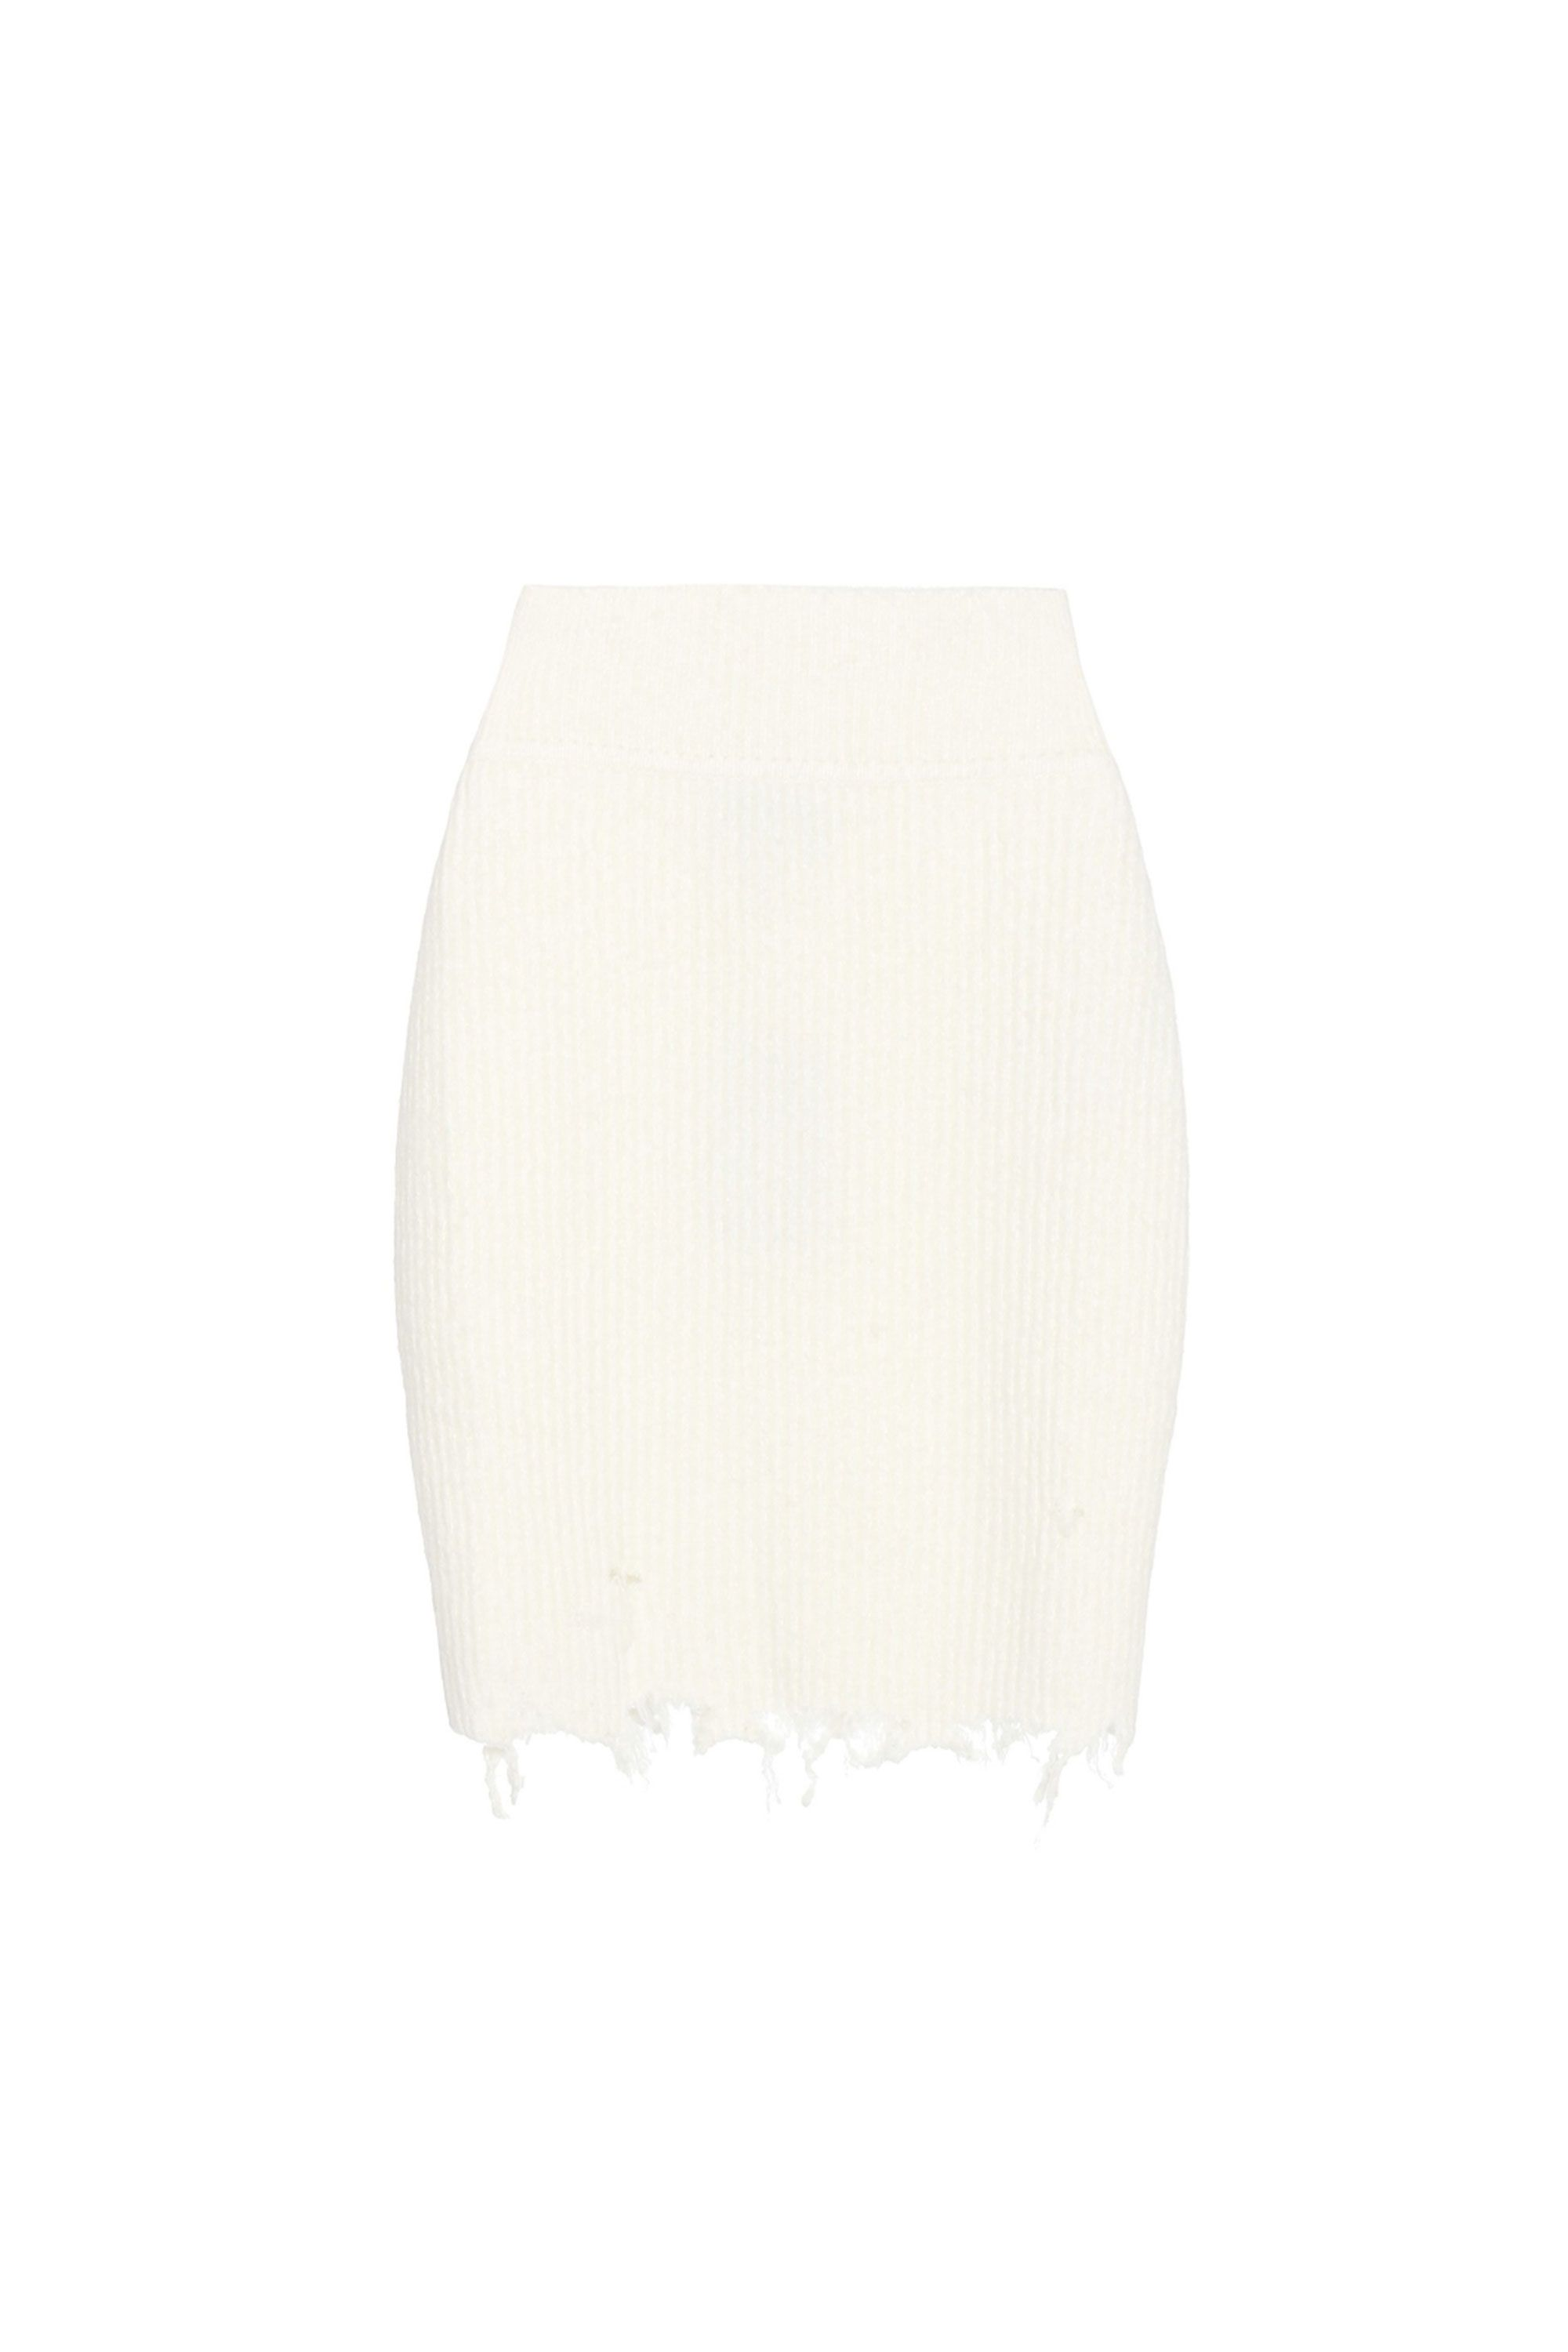 "<p>Yeezy Distressed Wool-Blend Skirt (Season 3), $560&#x3B;&nbsp&#x3B;<a href=""http://www.mytheresa.com/us_en/yeezy-rock-mit-distressed-effekten-season-3-690839.html?utm_source=affiliate&amp&#x3B;utm_medium=affiliate.cj.us"" target=""_blank"" data-tracking-id=""recirc-text-link"">mytheresa.com</a></p>"